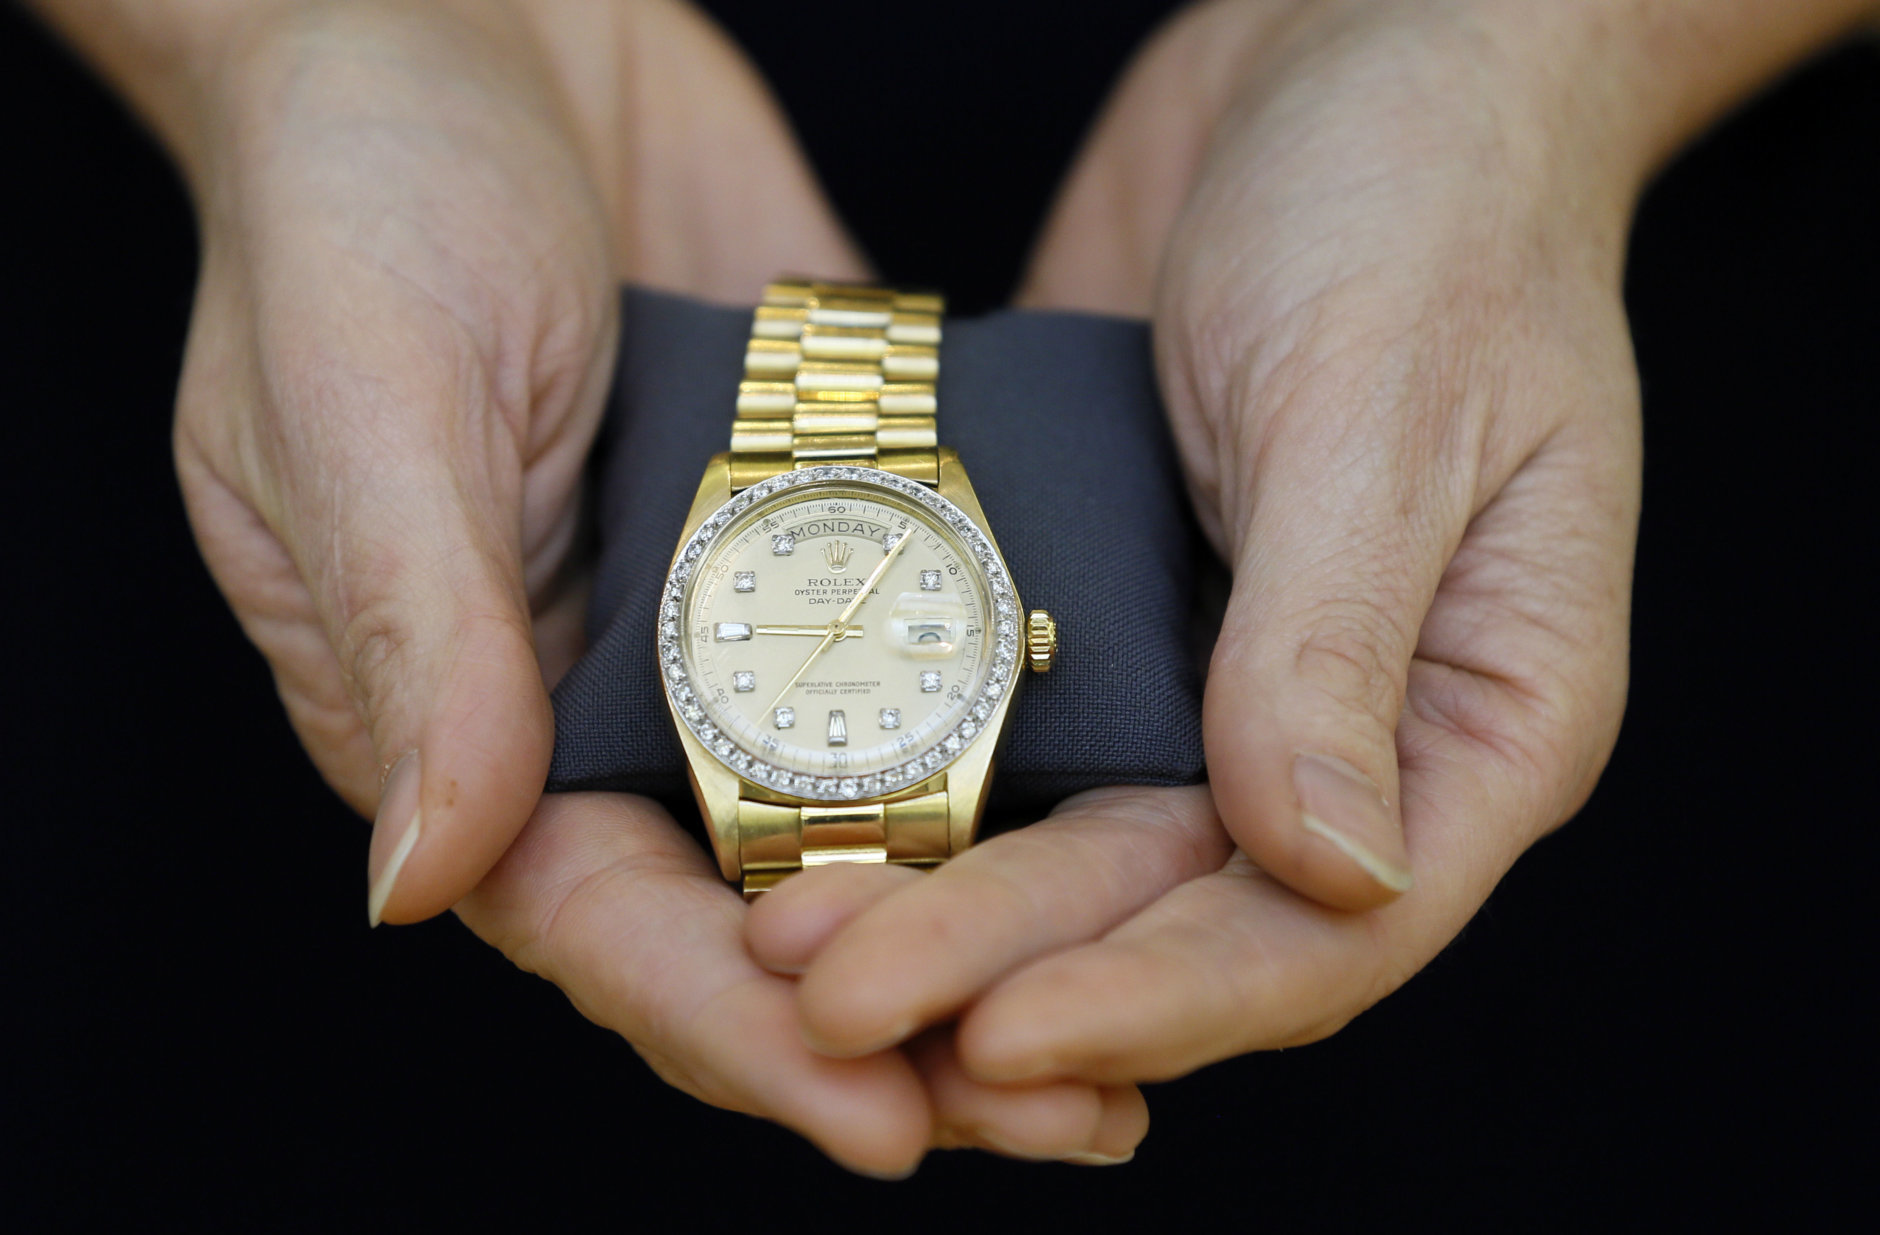 A Christie's specialist displays a Rolex watch given to Elvis Presley by his manager for Christmas in 1976, during a photocall at the auction rooms in London, Friday, Nov. 23, 2012. The watch estimated at 6,000- 8,000 pounds (9,500- 12,750 US Dollars) will go on sale in the Pop Culture auction on Nov. 29 in London. (AP Photo/Kirsty Wigglesworth)